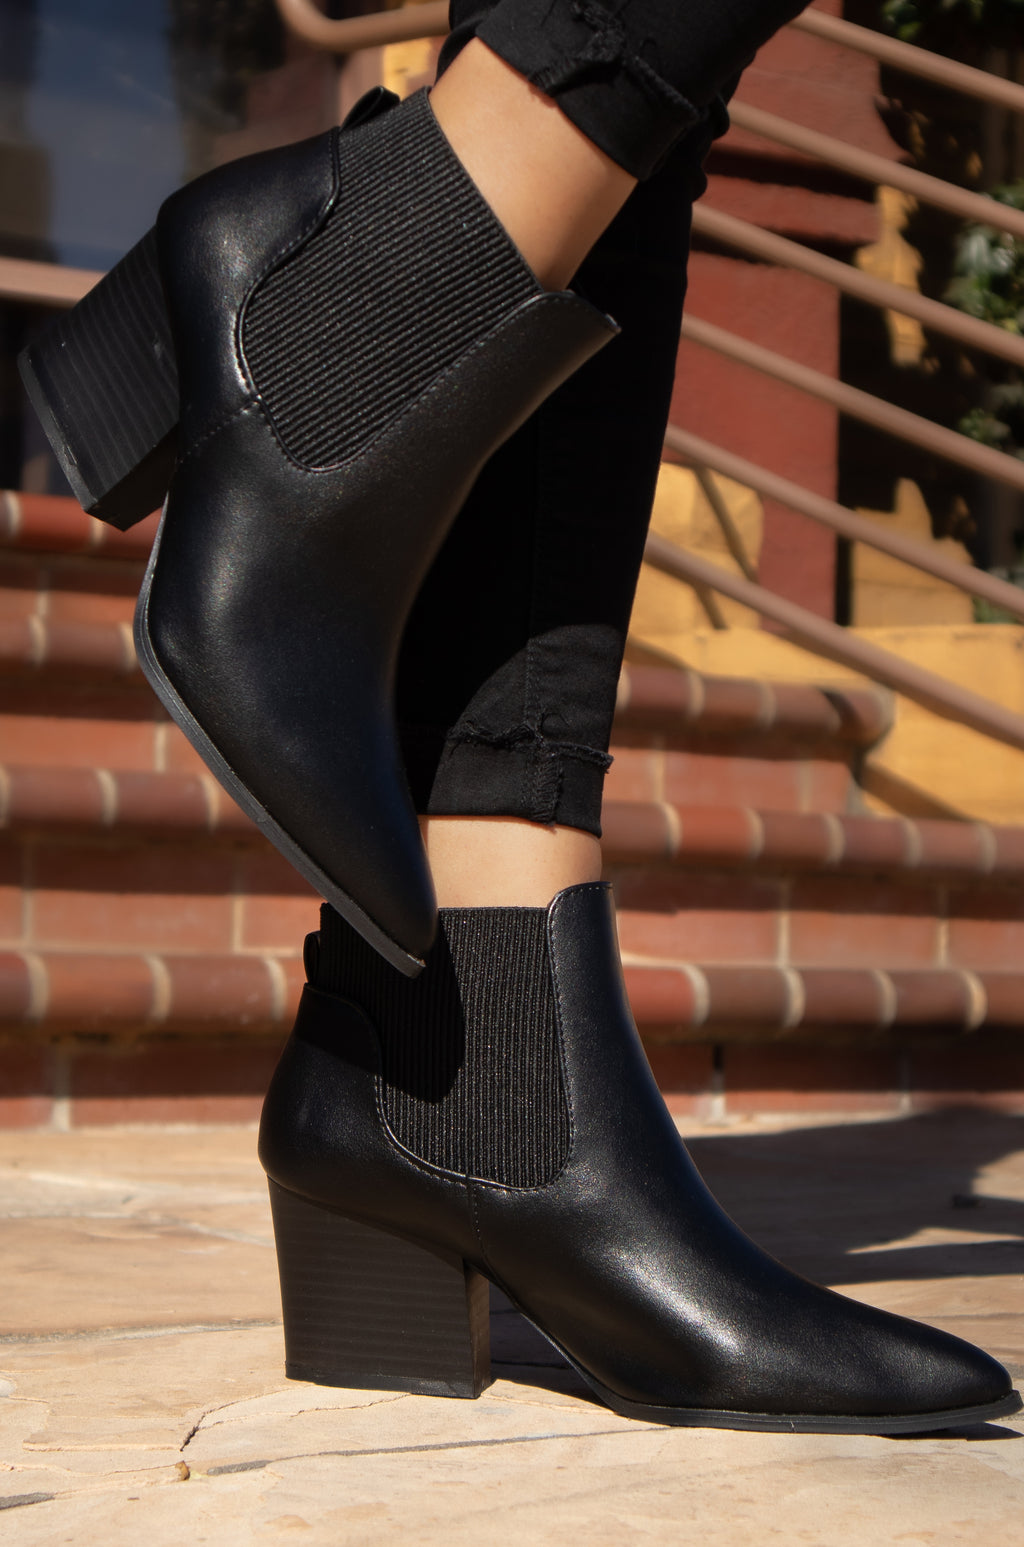 Clean Slate - Black Pointed Toe Chelsea Booties